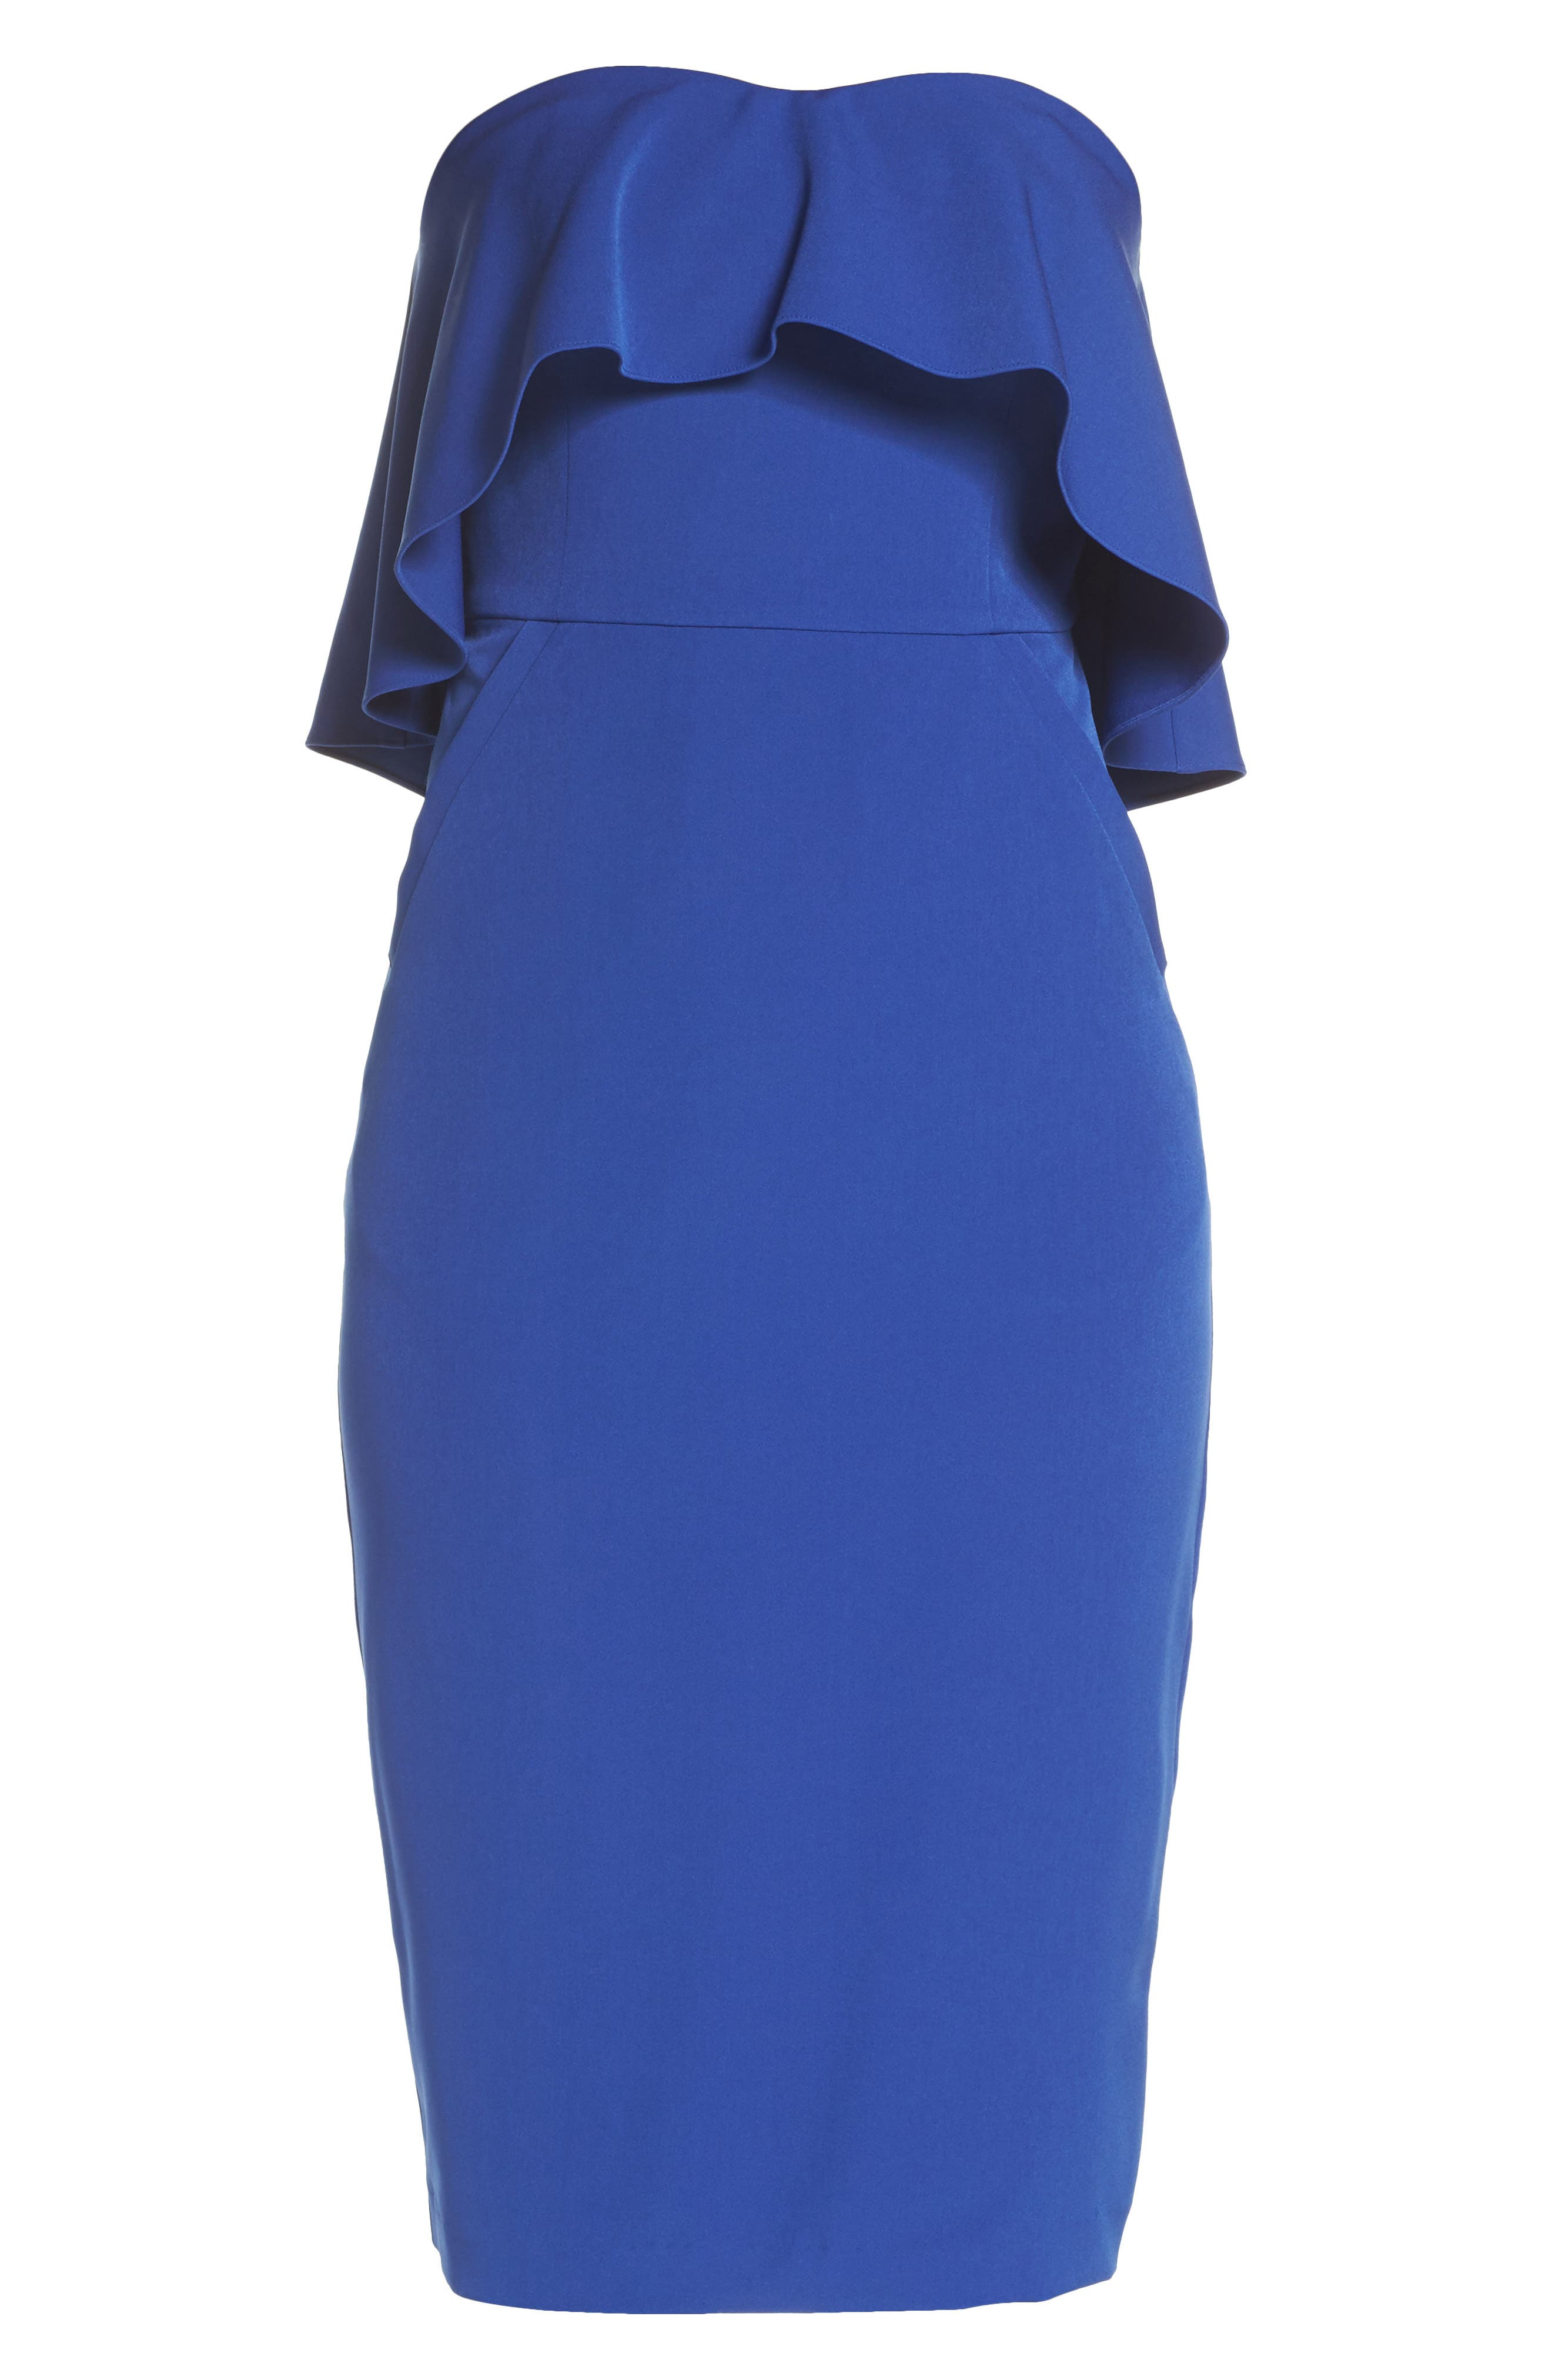 Ruffle Stretch Crepe Sheath Dress,                             Alternate thumbnail 6, color,                             Blue Surf